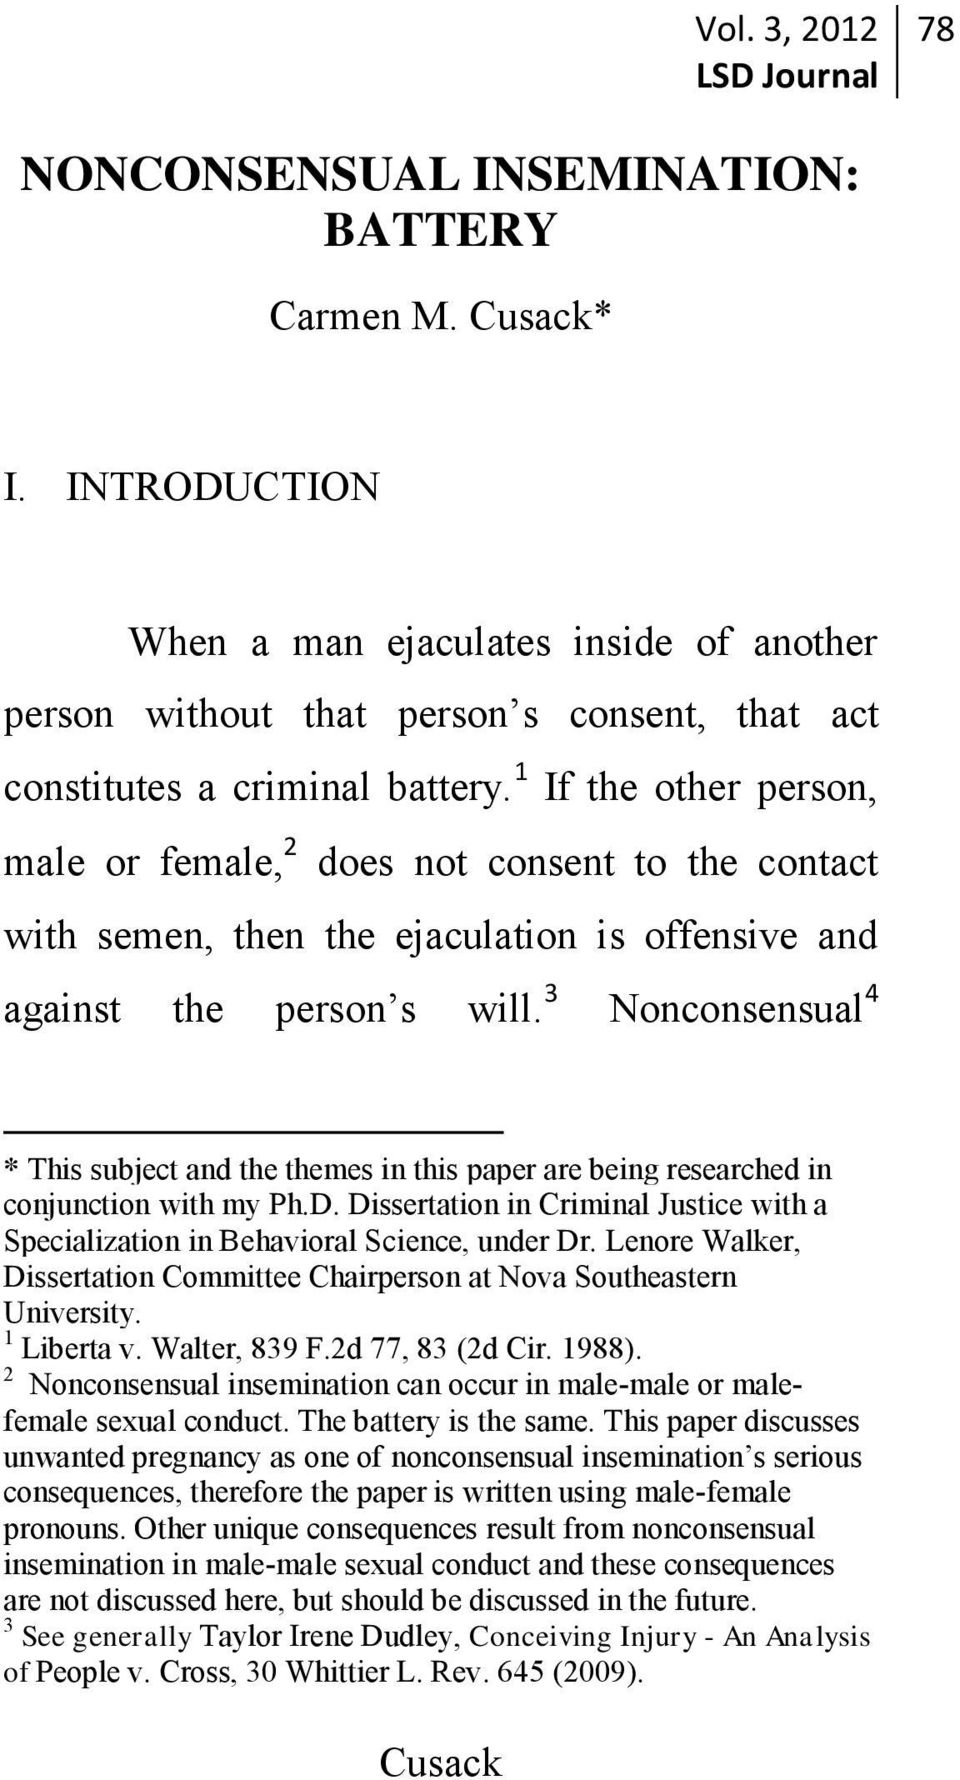 3 Nonconsensual 4 * This subject and the themes in this paper are being researched in conjunction with my Ph.D. Dissertation in Criminal Justice with a Specialization in Behavioral Science, under Dr.